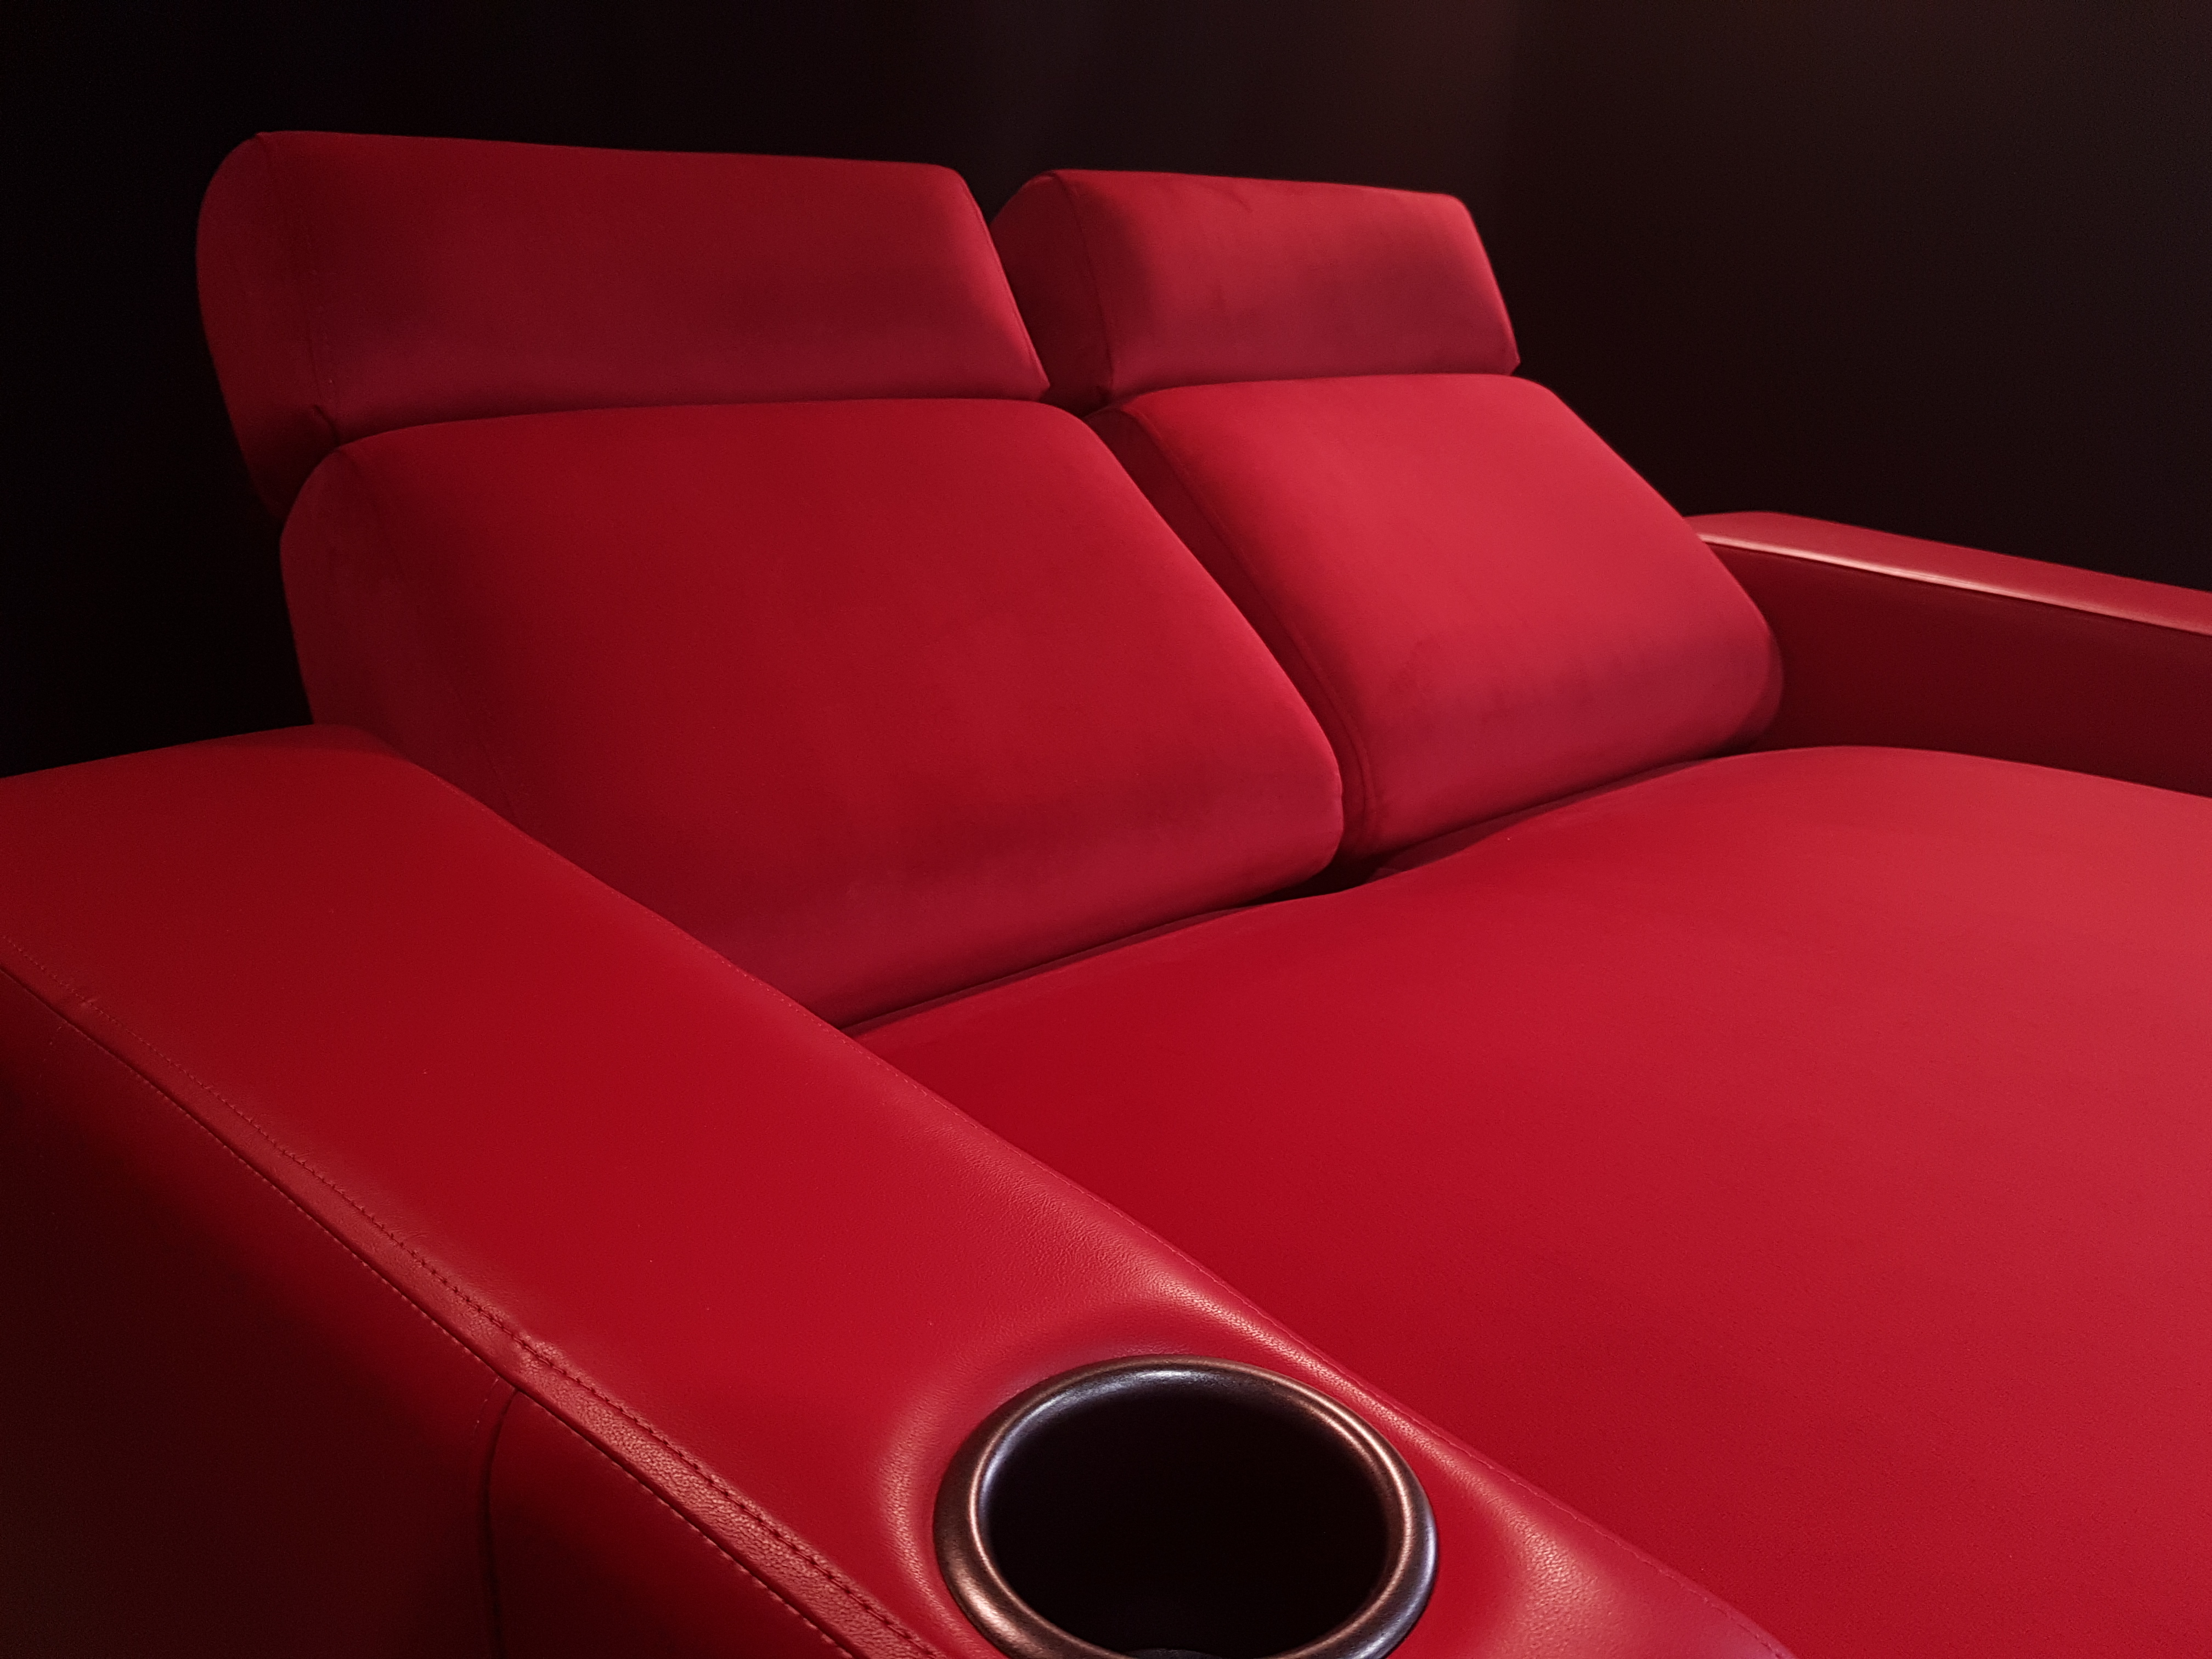 Red Leather, Chaise, Series, Leather, Cup holder